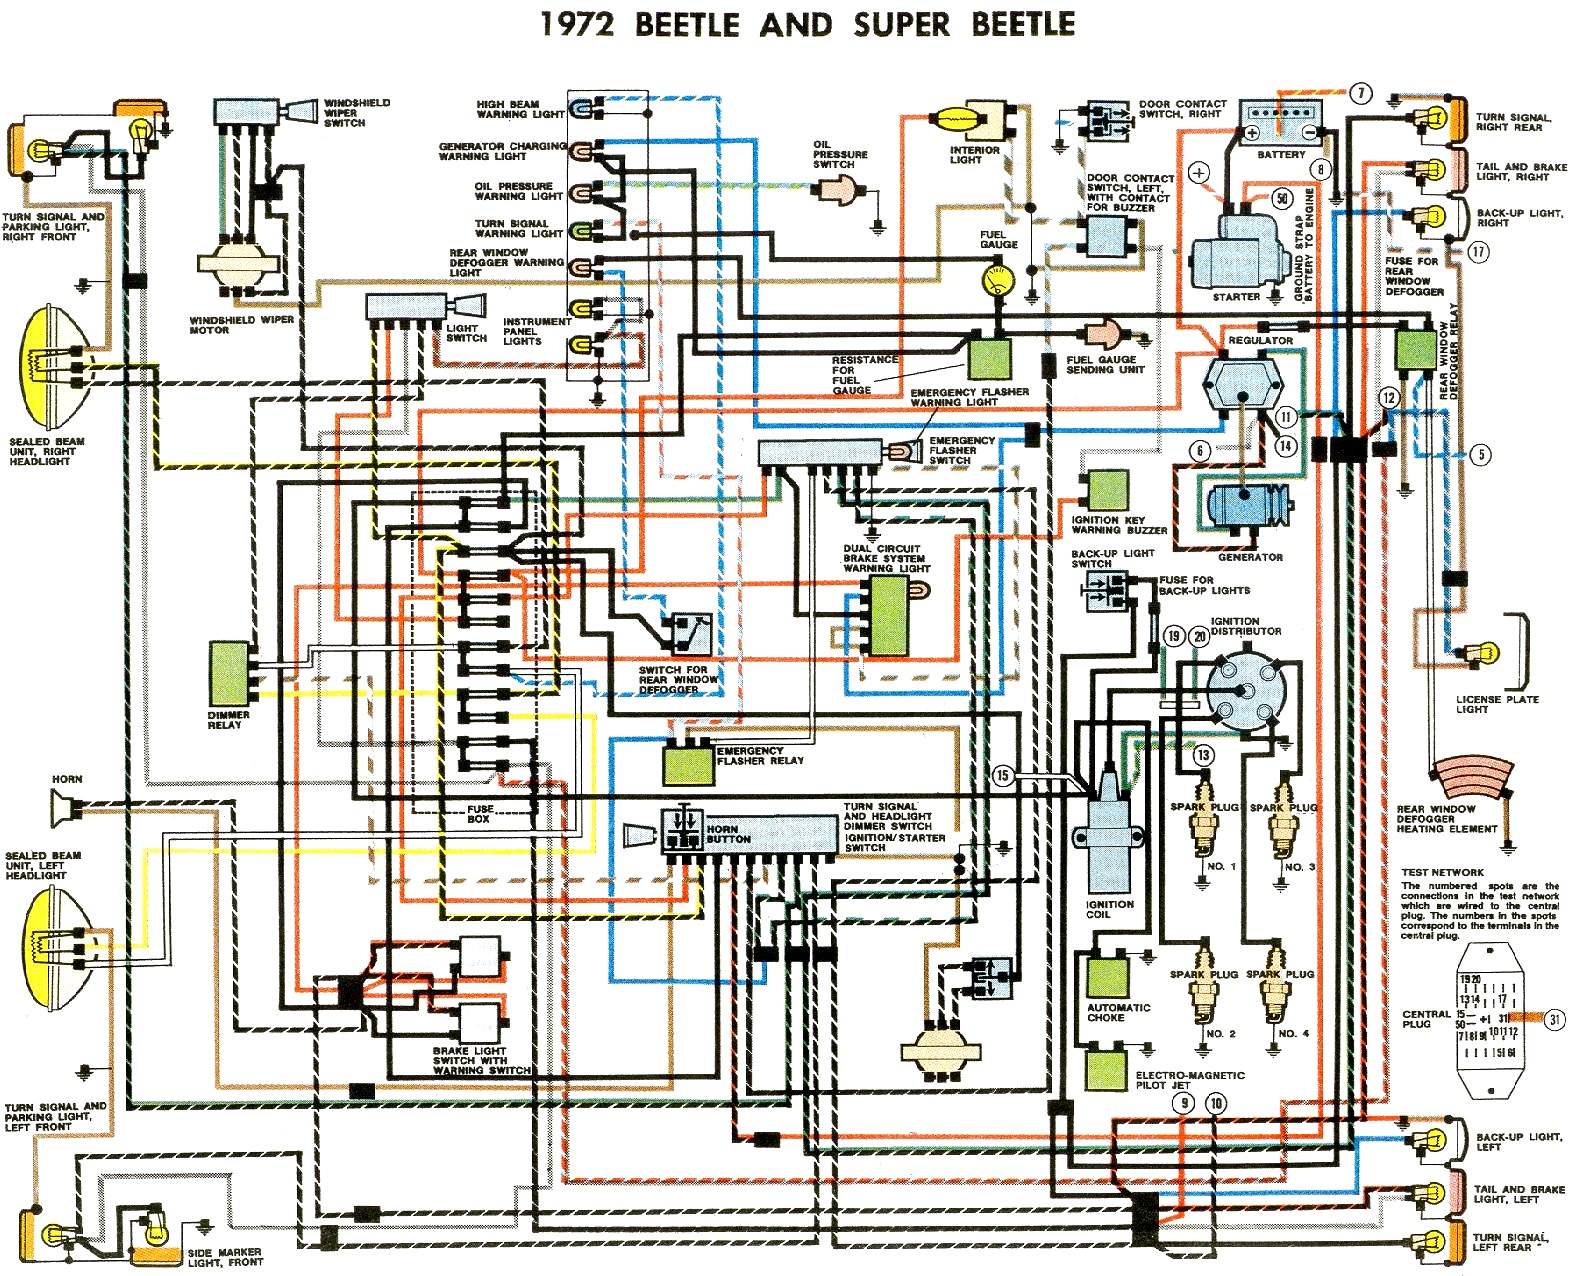 bug_72 1972 beetle wiring diagram thegoldenbug com beetle wiring diagram to fix a/c fan at readyjetset.co